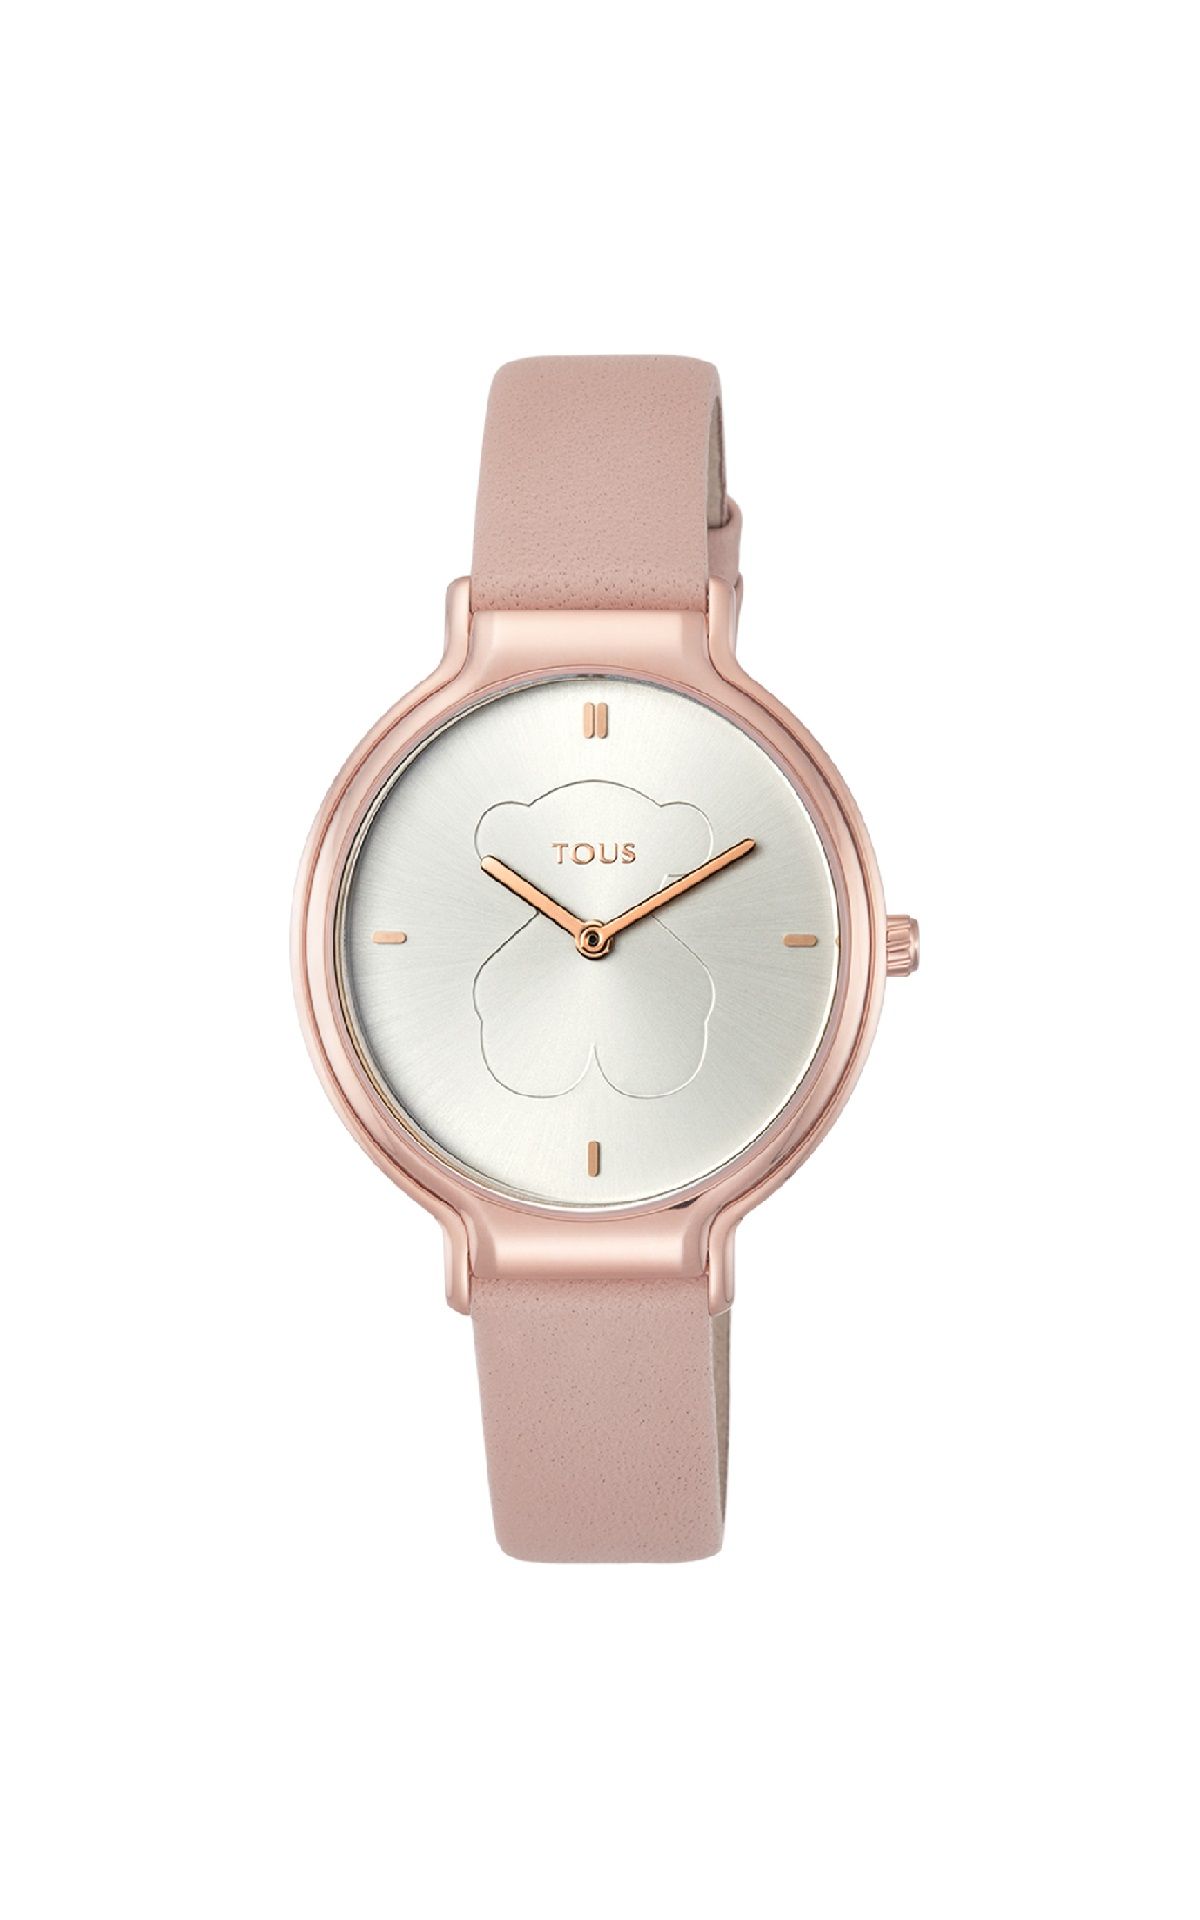 Pink leather watch Tous